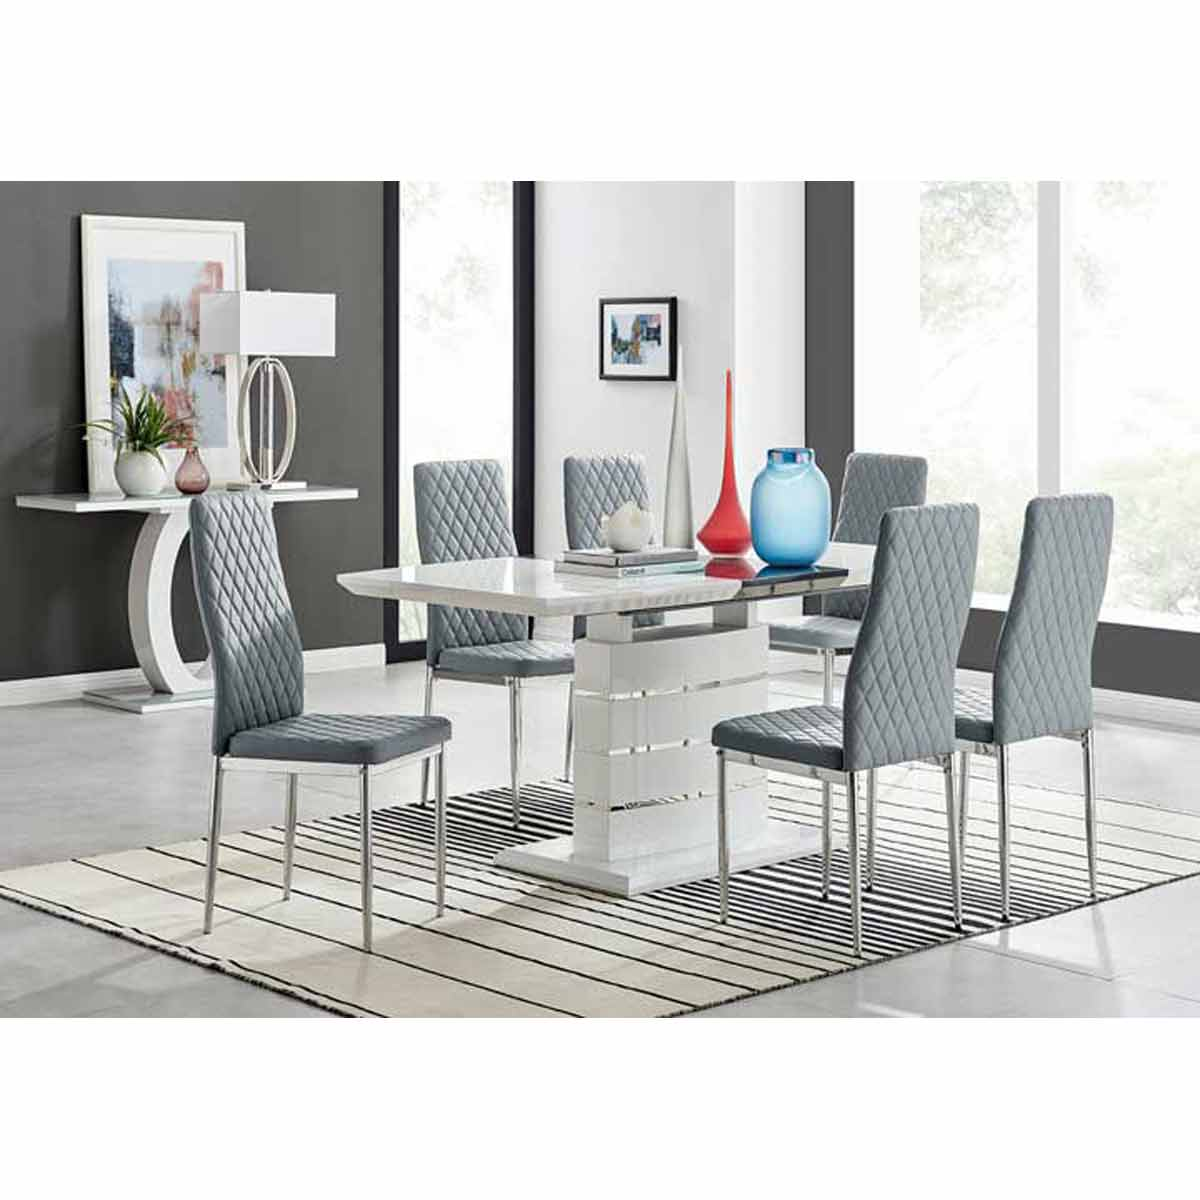 Furniture Box Renato 120cm High Gloss Extending Dining Table and 6 Grey Milan Chairs